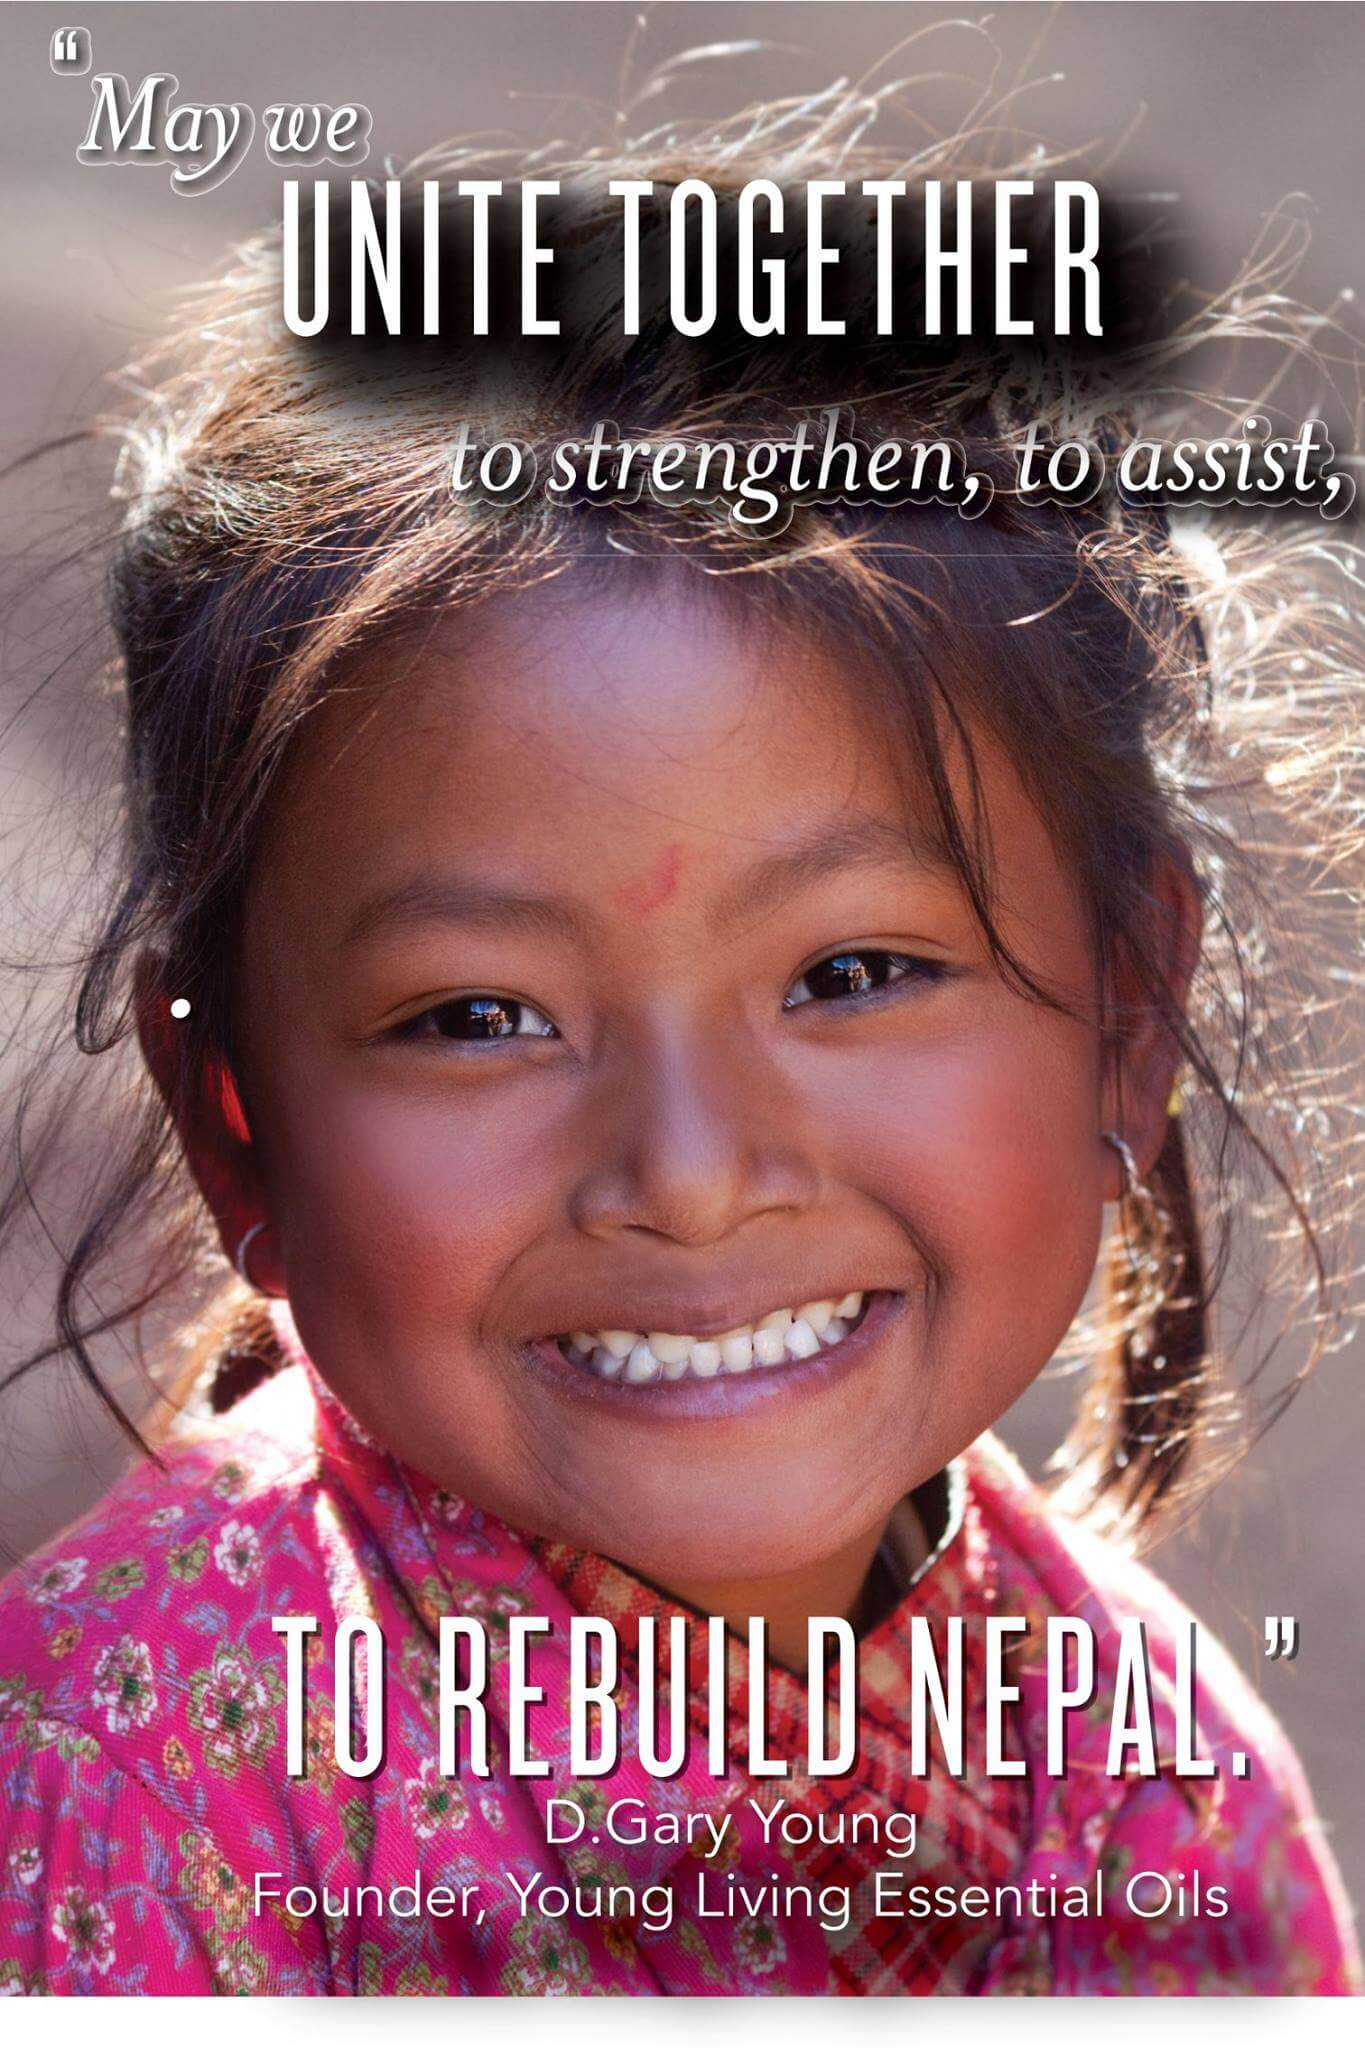 Rebuild Nepal - Oh Lardy's Spring Giving Project